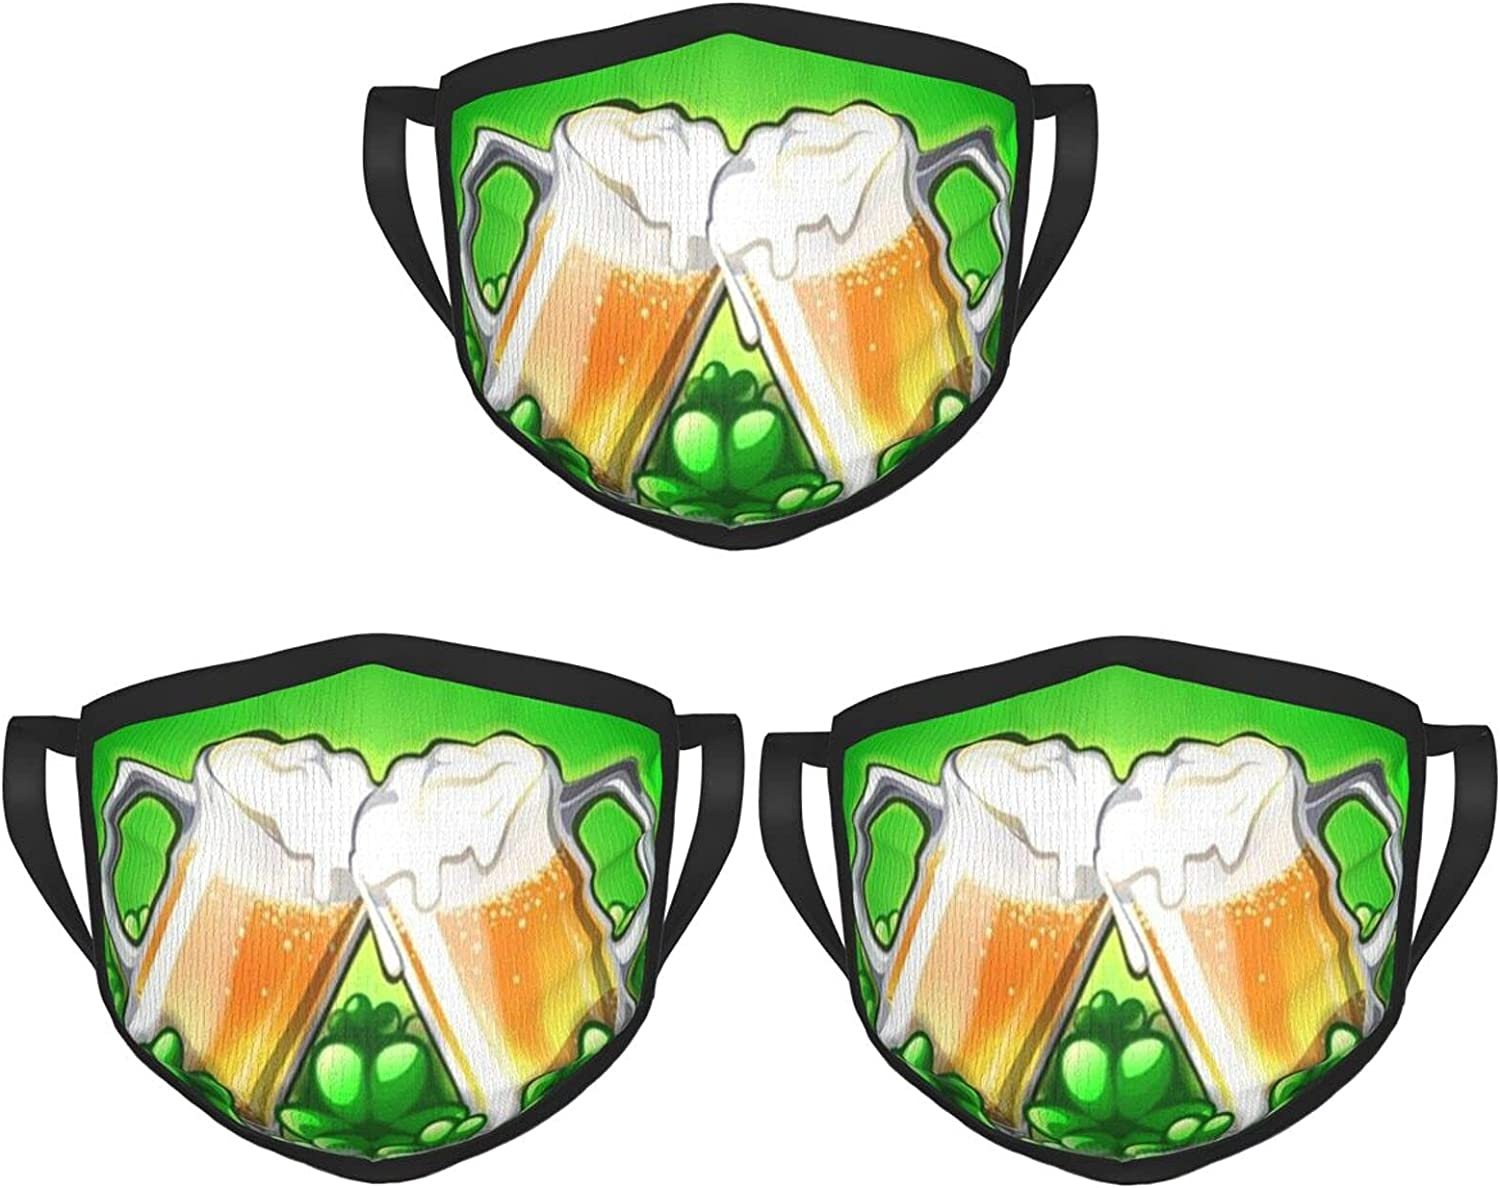 Balaclava Earmuffs Happy St Patricks Day Cheer Beer Face Mouth Cover Mask Reusable Dust Scarf Towel Cover Headwrap